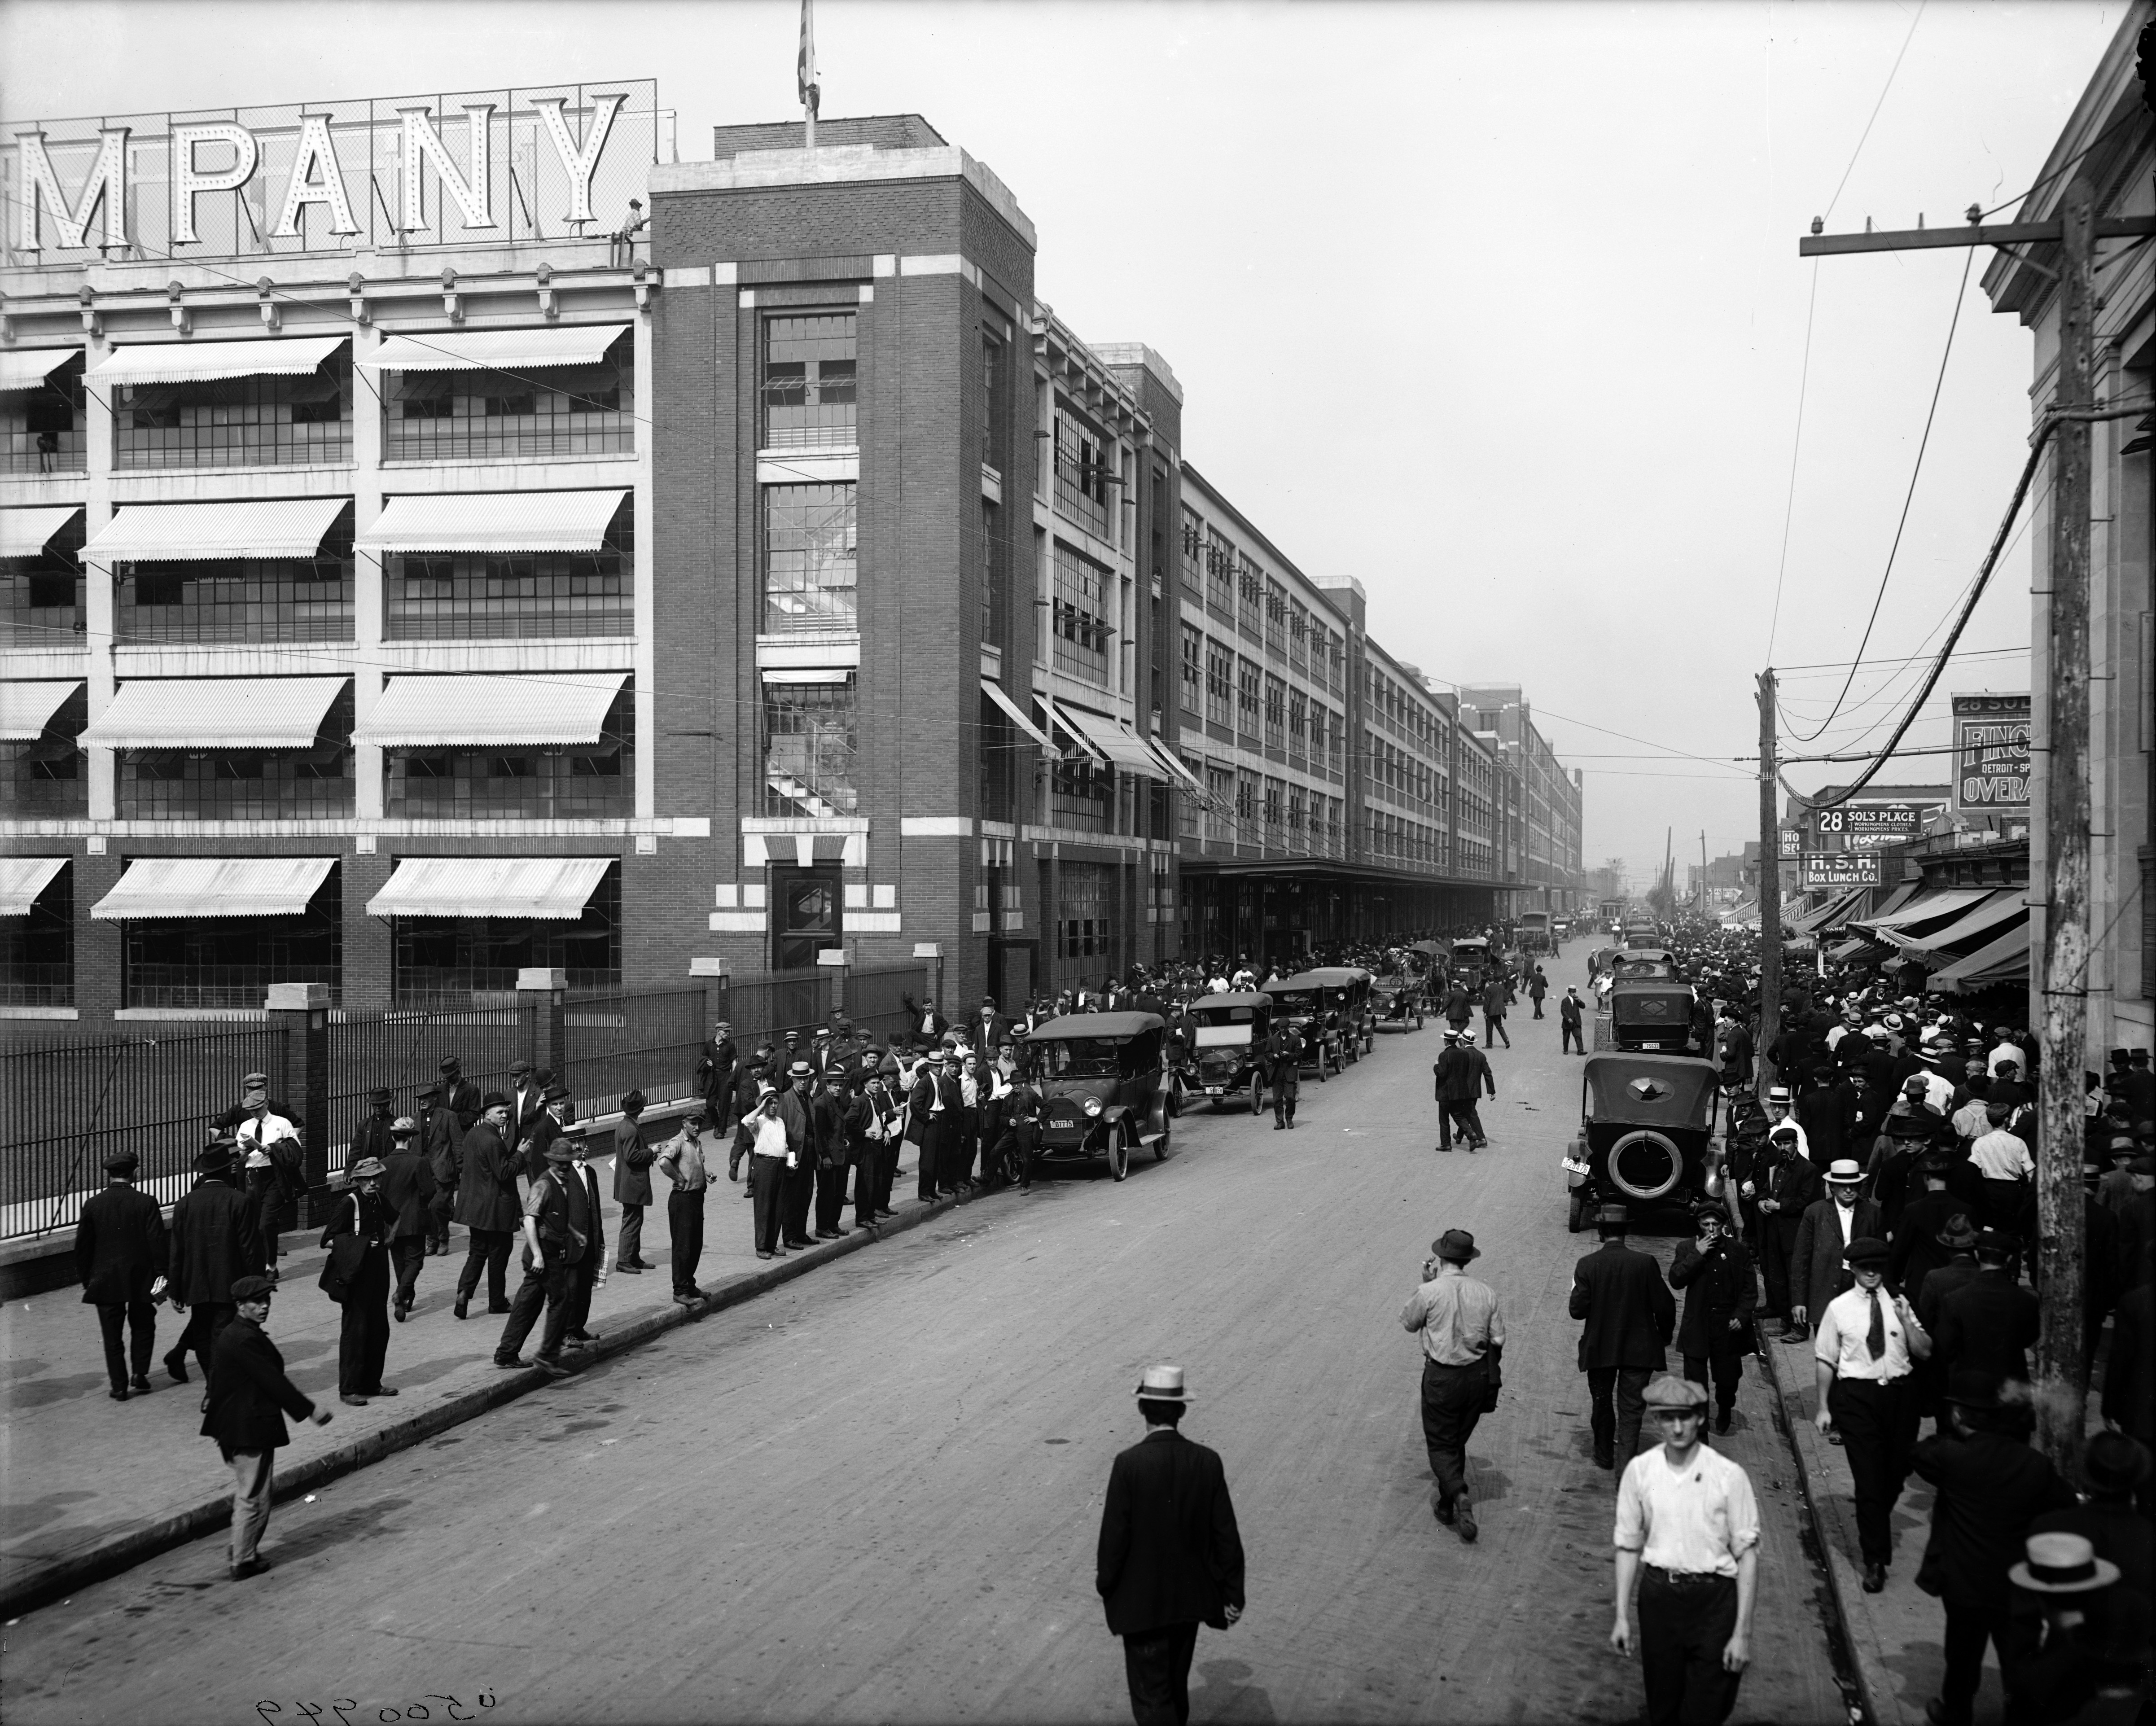 12 Pictures Show What Michigan Looked Like 100 Years Ago